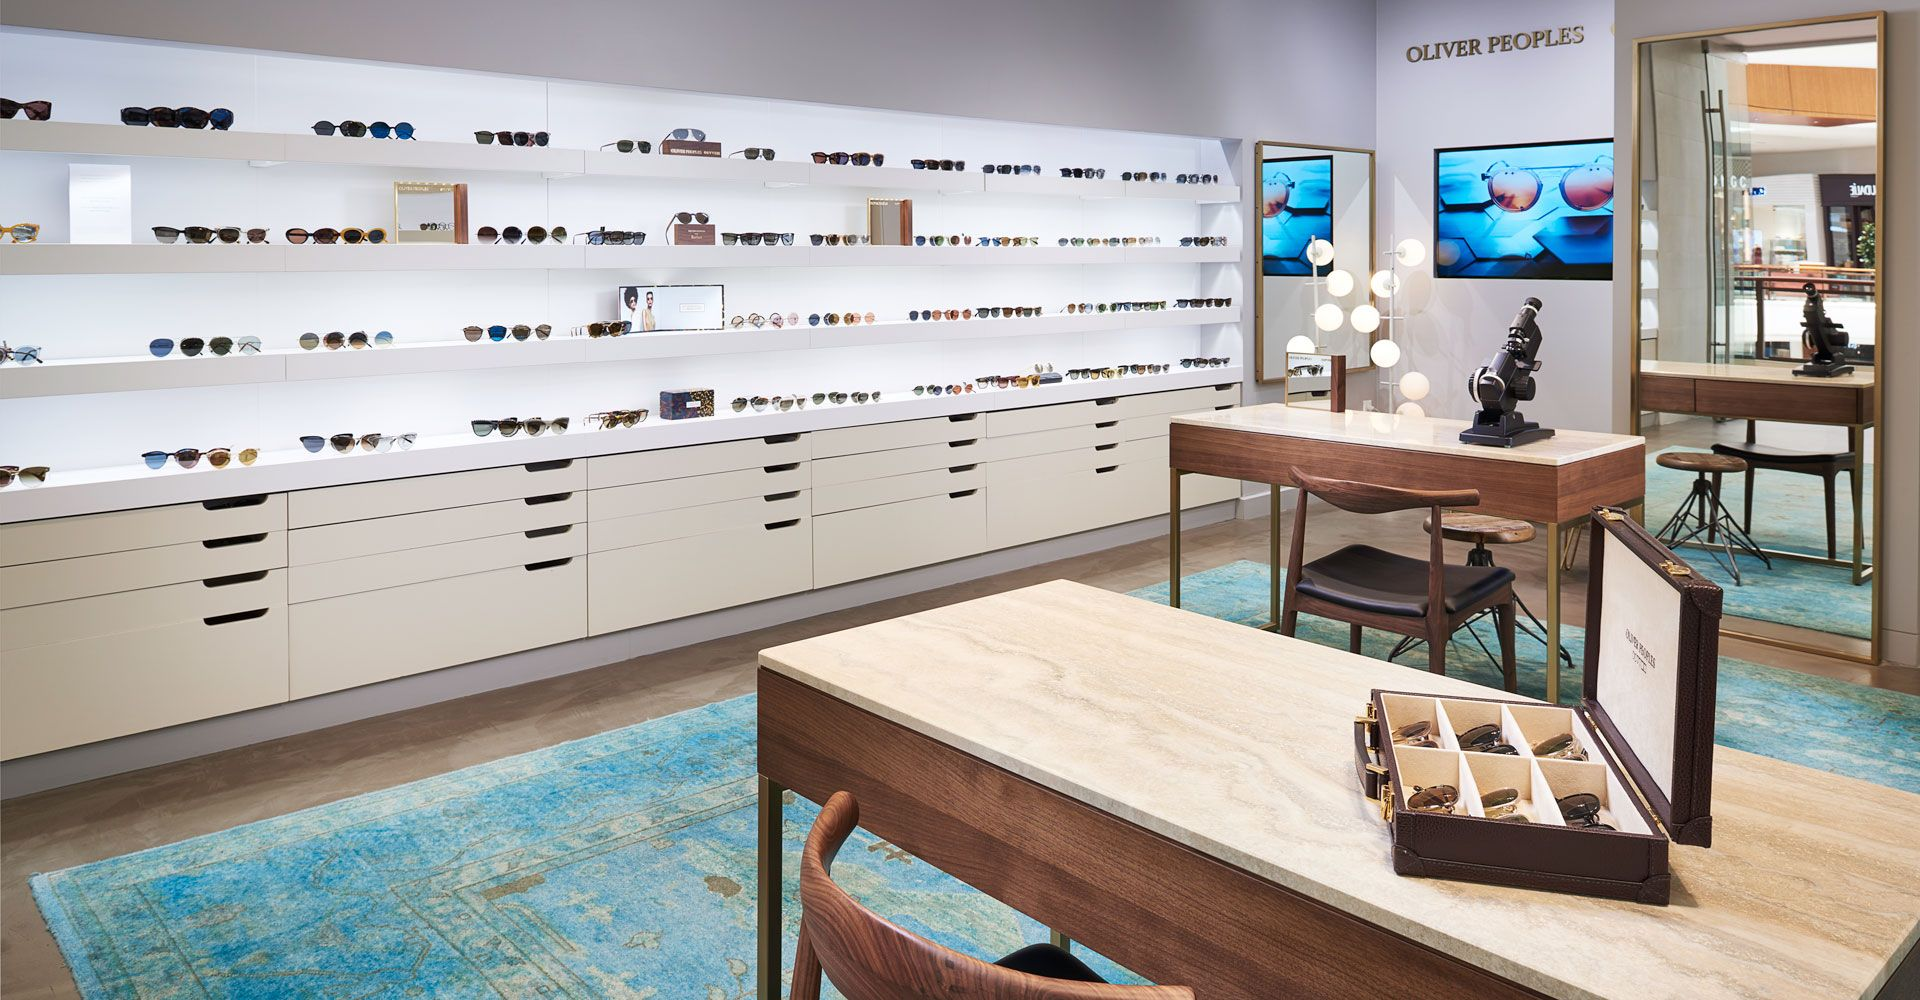 Oliver Peoples Aventura Mall Eyewear Boutique